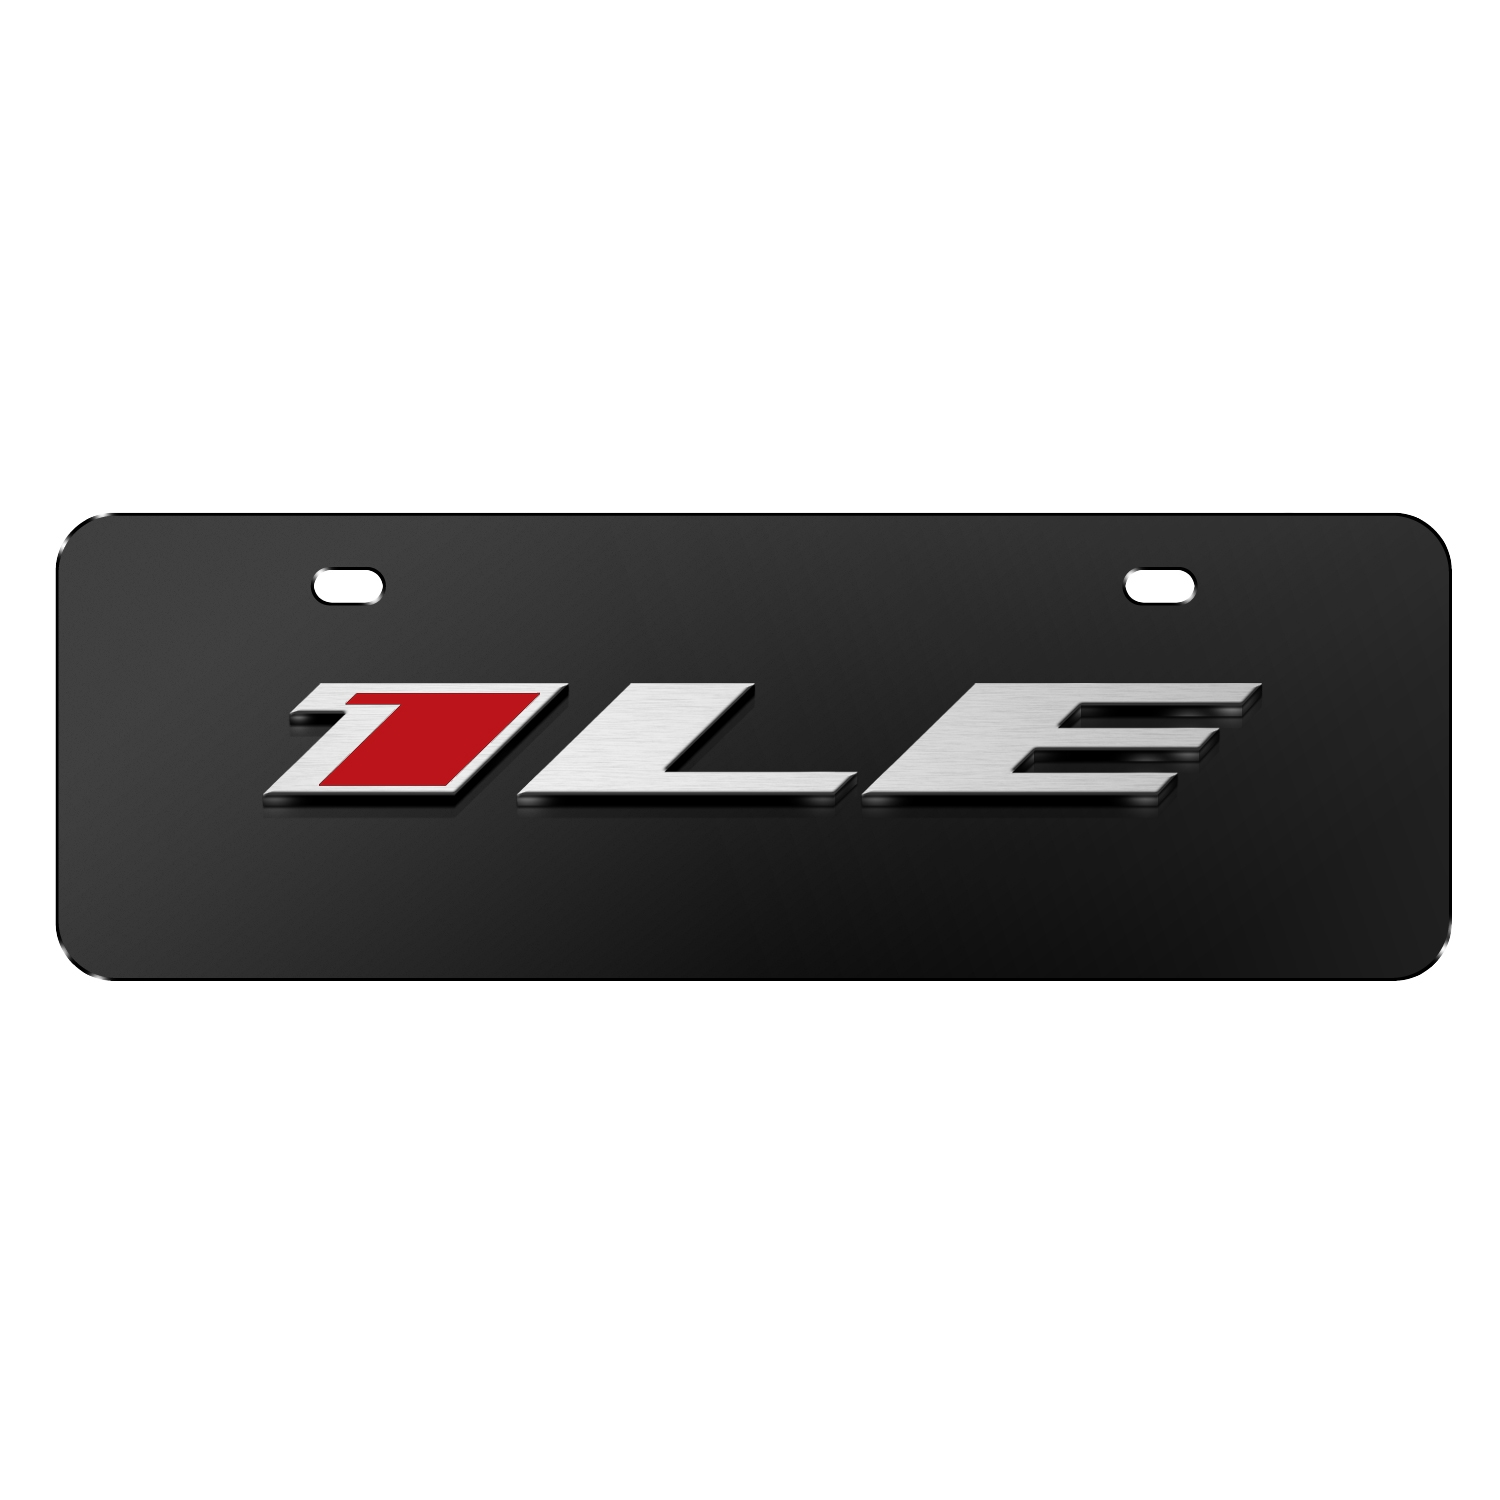 "Chevrolet 2016 Camaro 1LE 3D Logo Black 12""x4"" Half-Size Stainless Steel License Plate"